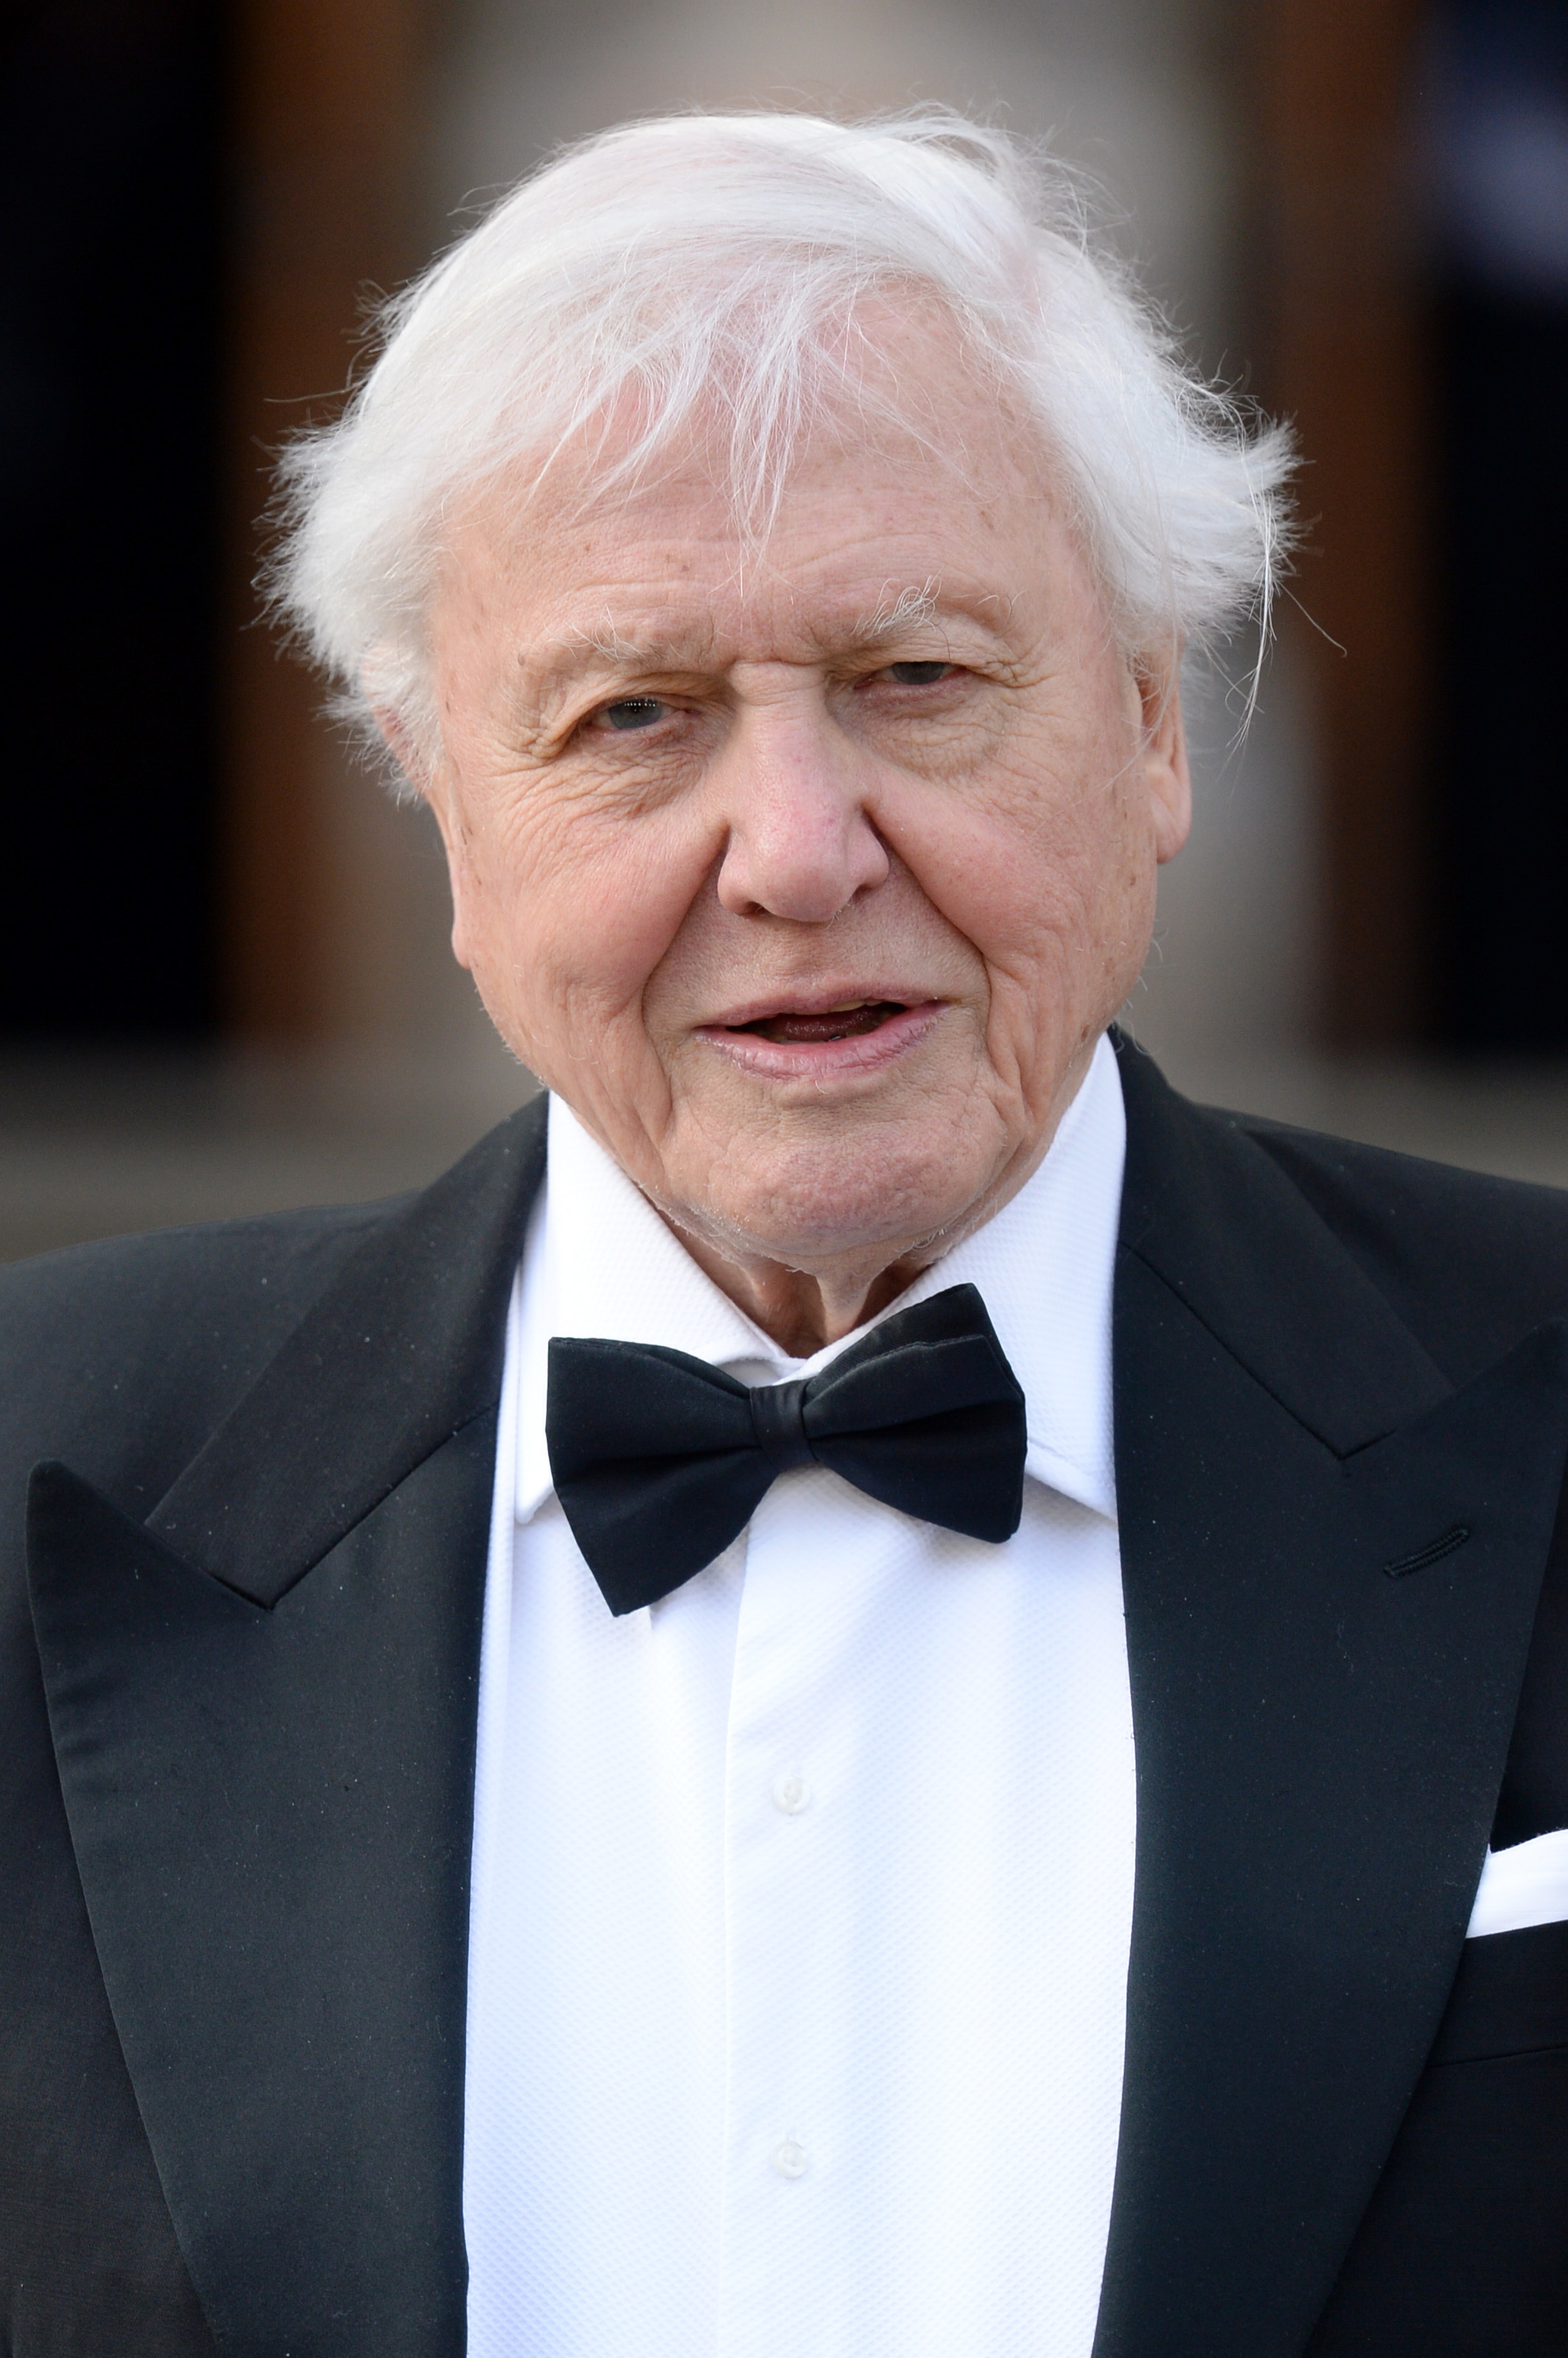 David Attenborough Is Making A Foray Into EDM Music At The Tender Age Of 93